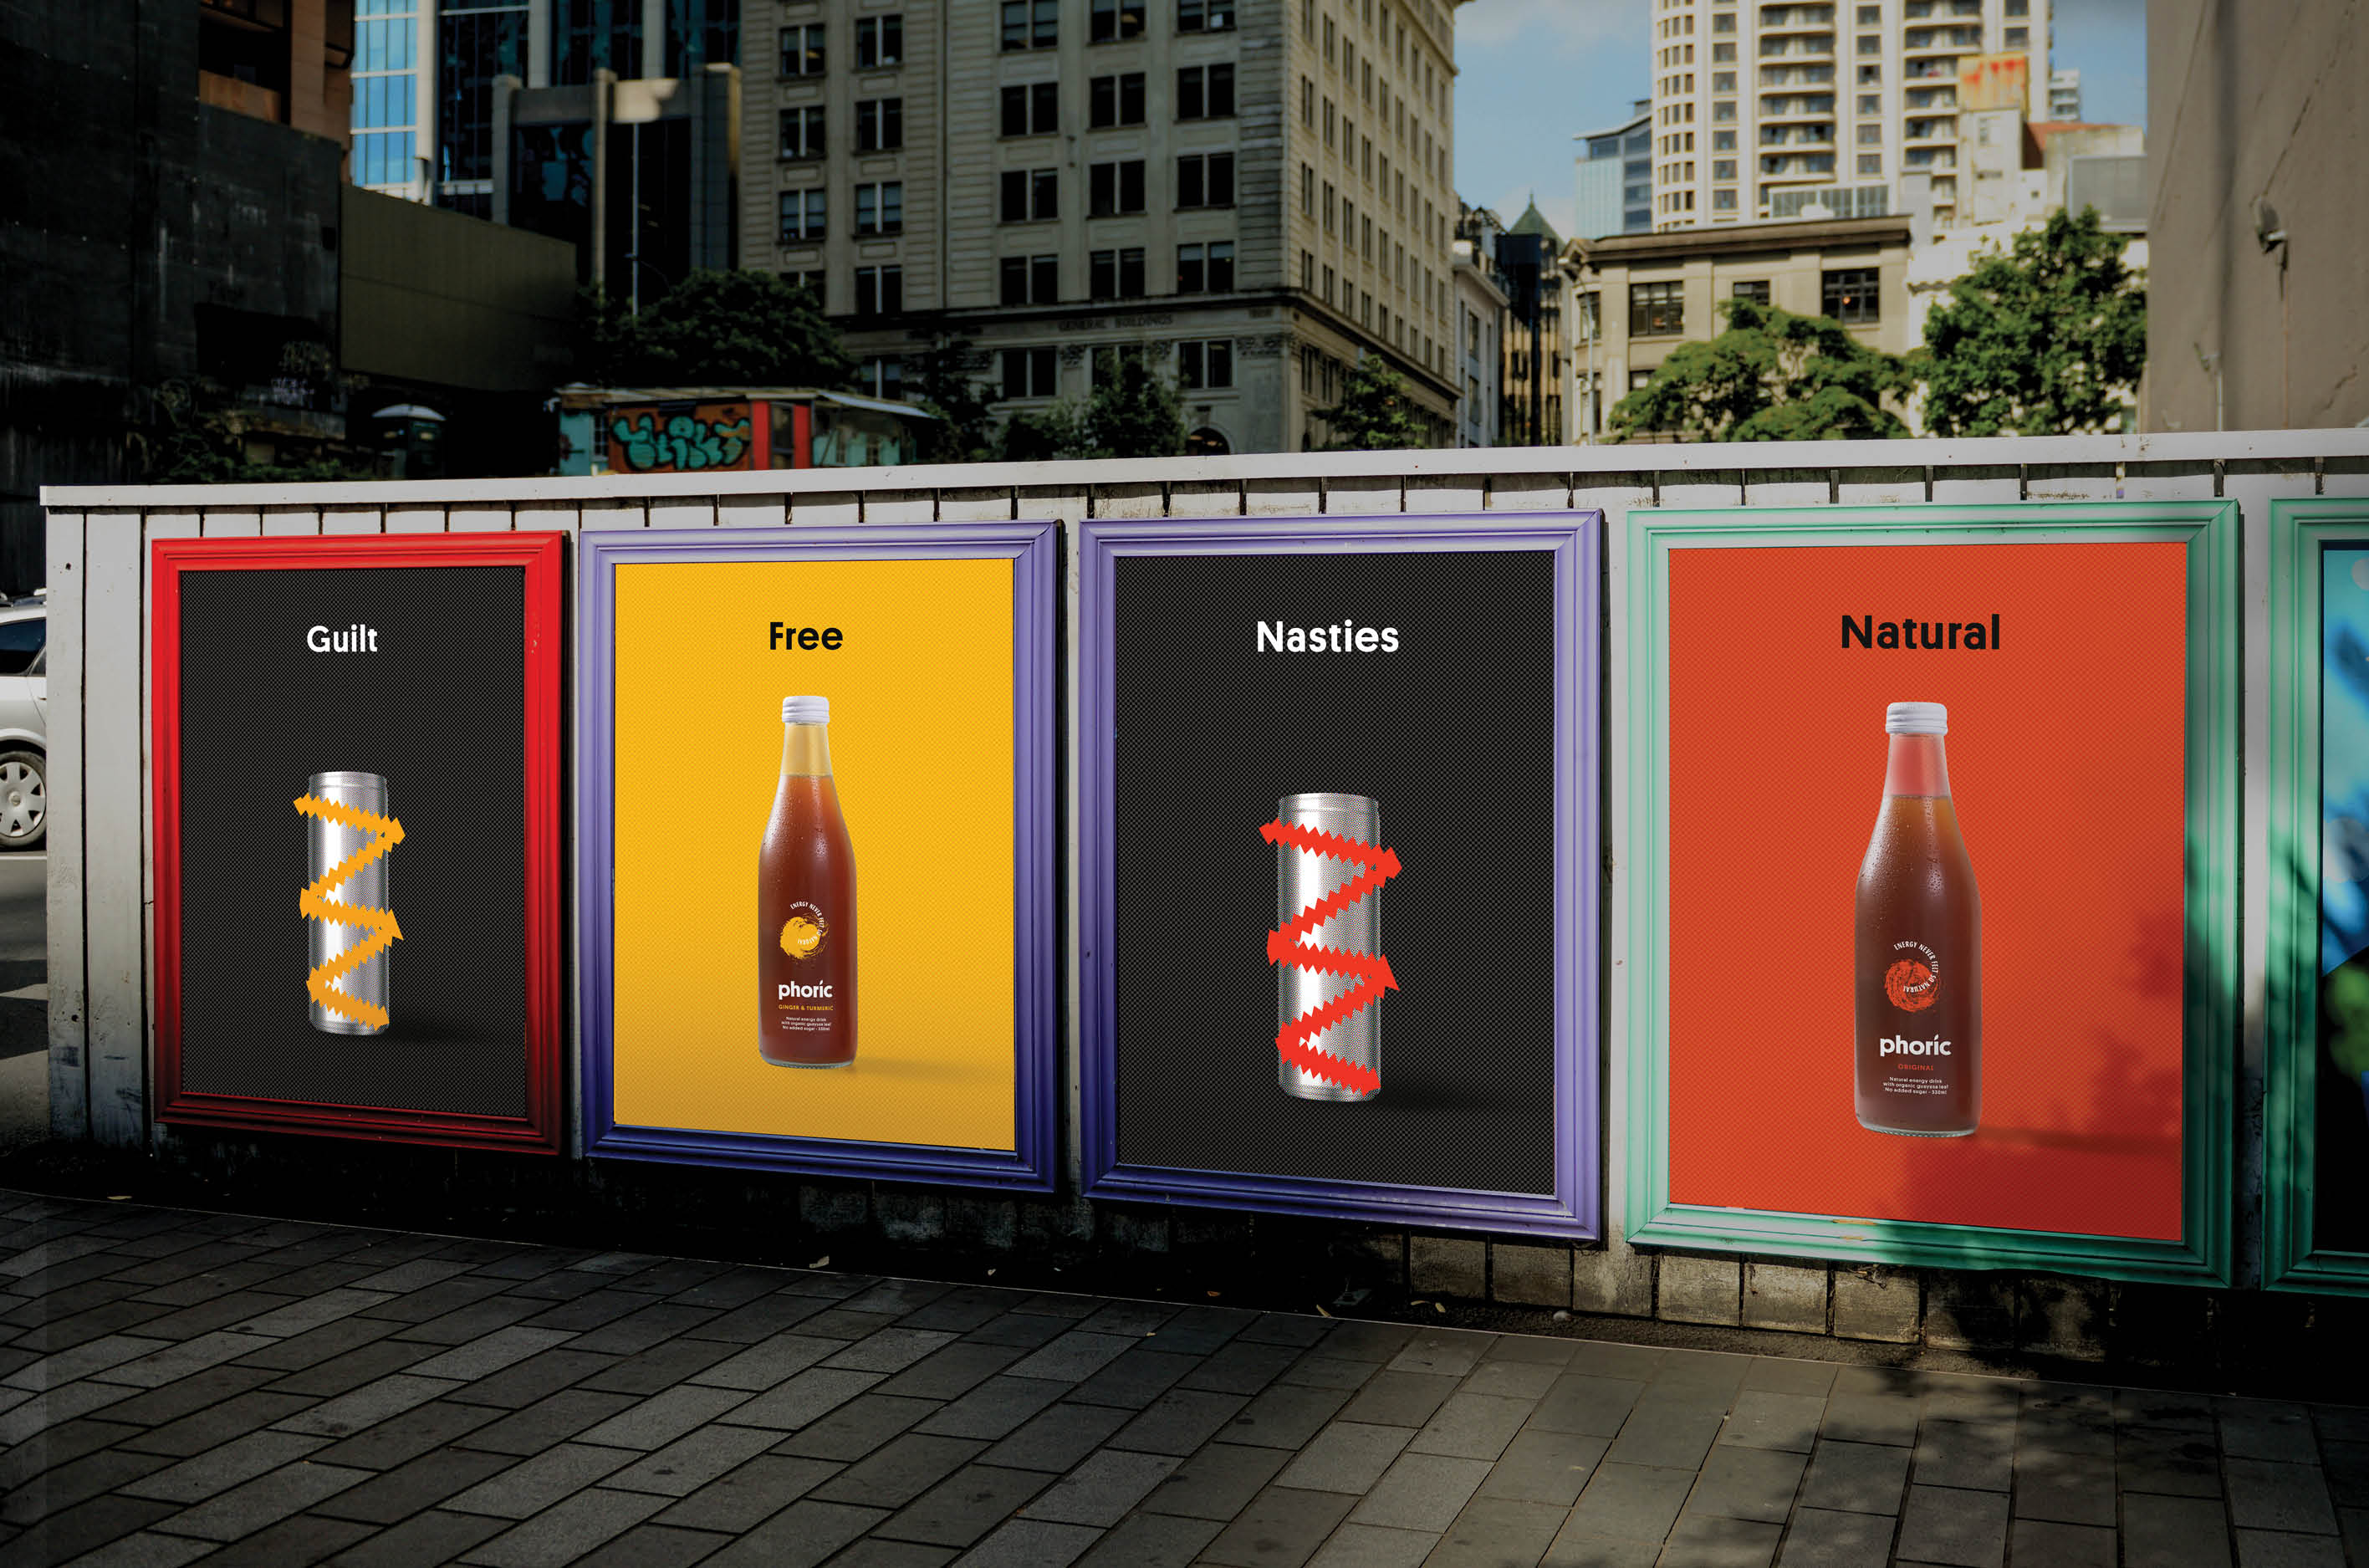 Phoric shakes up New Zealand's energy drink market with new launch campaign via Hello